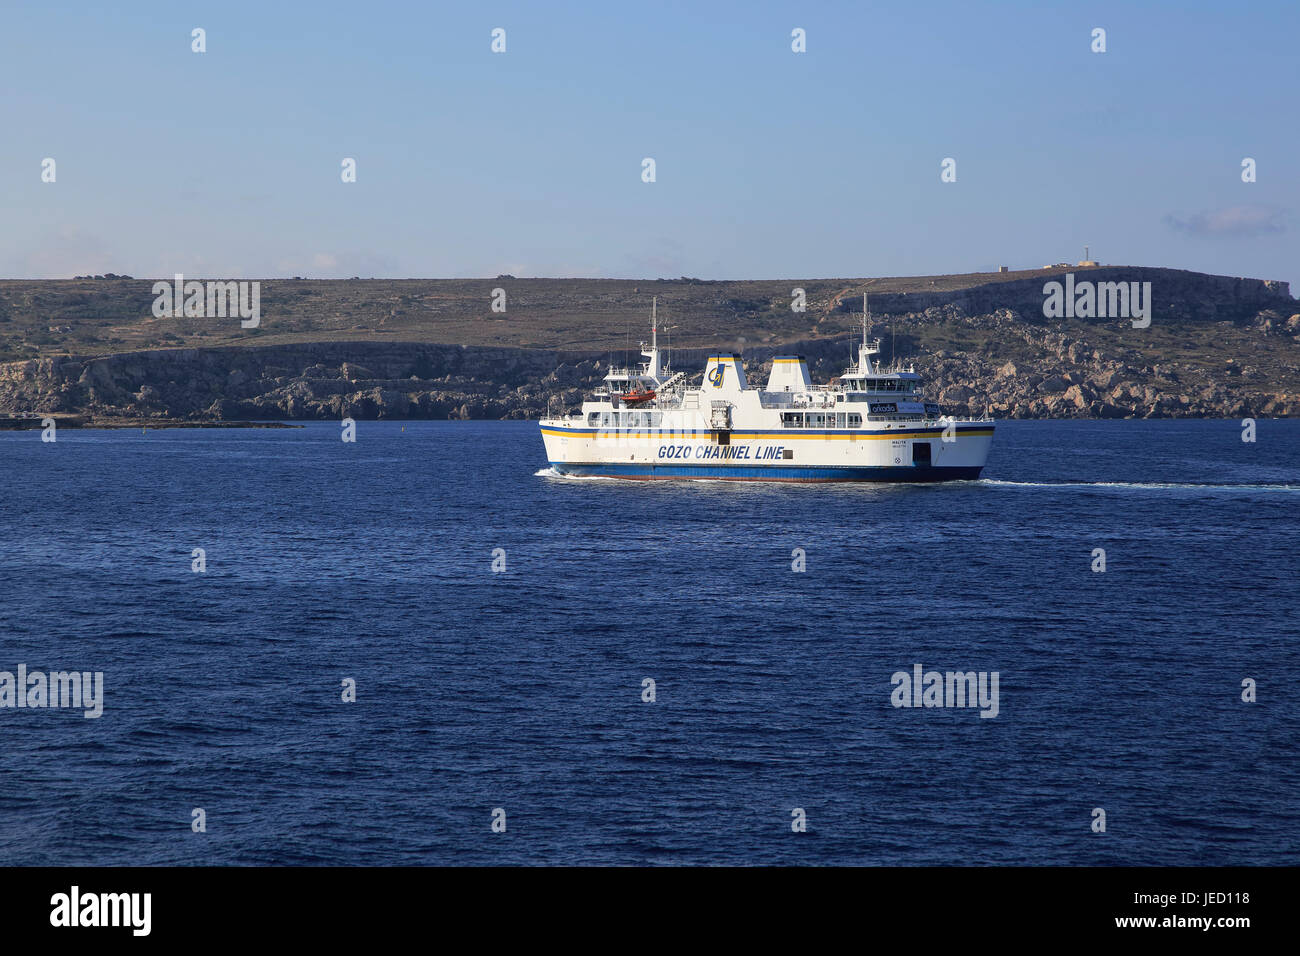 Gozo Channel Line ferry ship crossing between islands of Malta and Gozo passing Comino - Stock Image